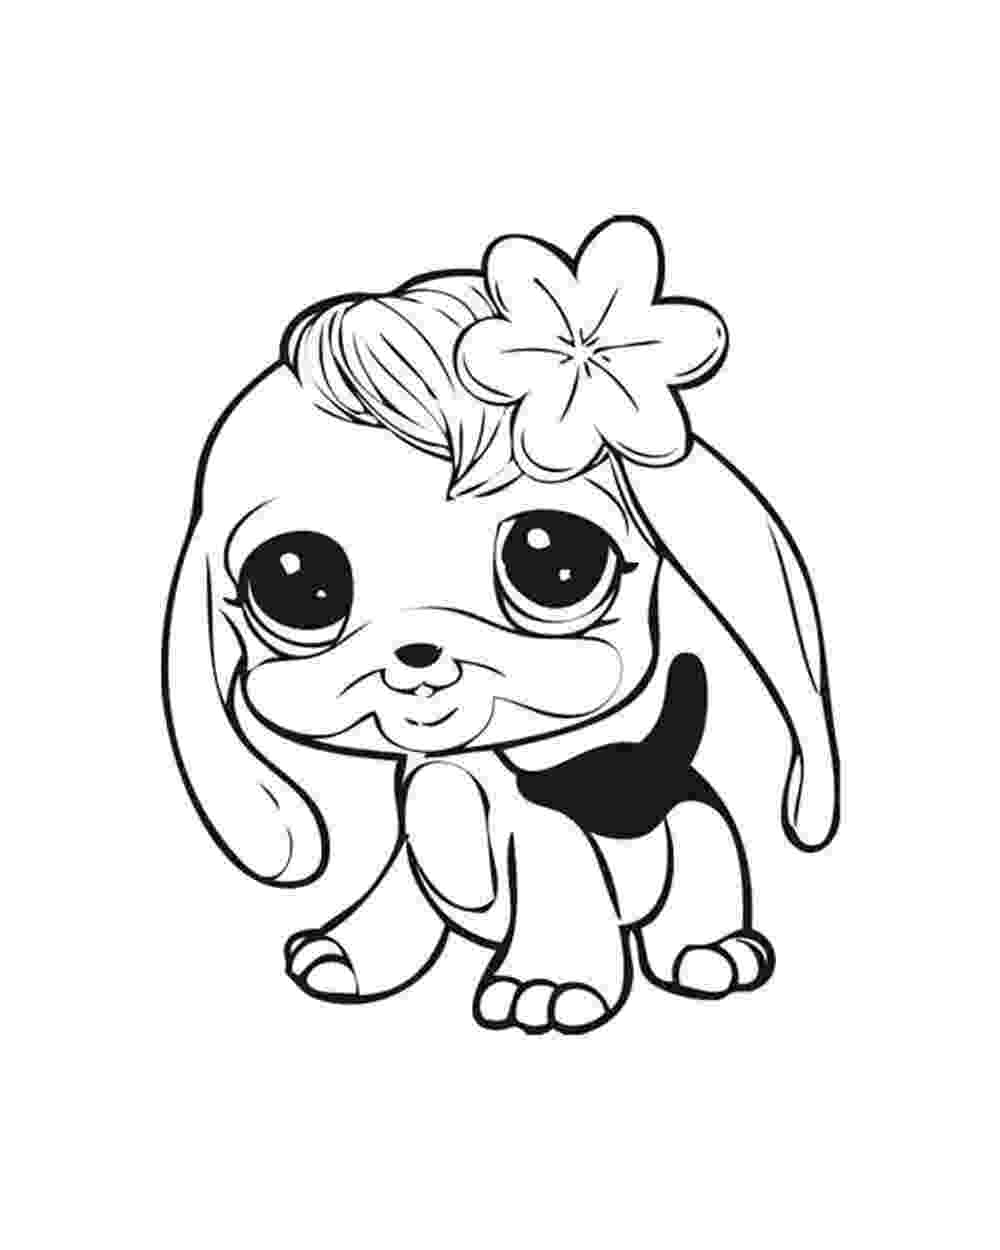 free printable coloring pages littlest pet shop free printable littlest pet shop coloring pages pages free shop printable littlest coloring pet